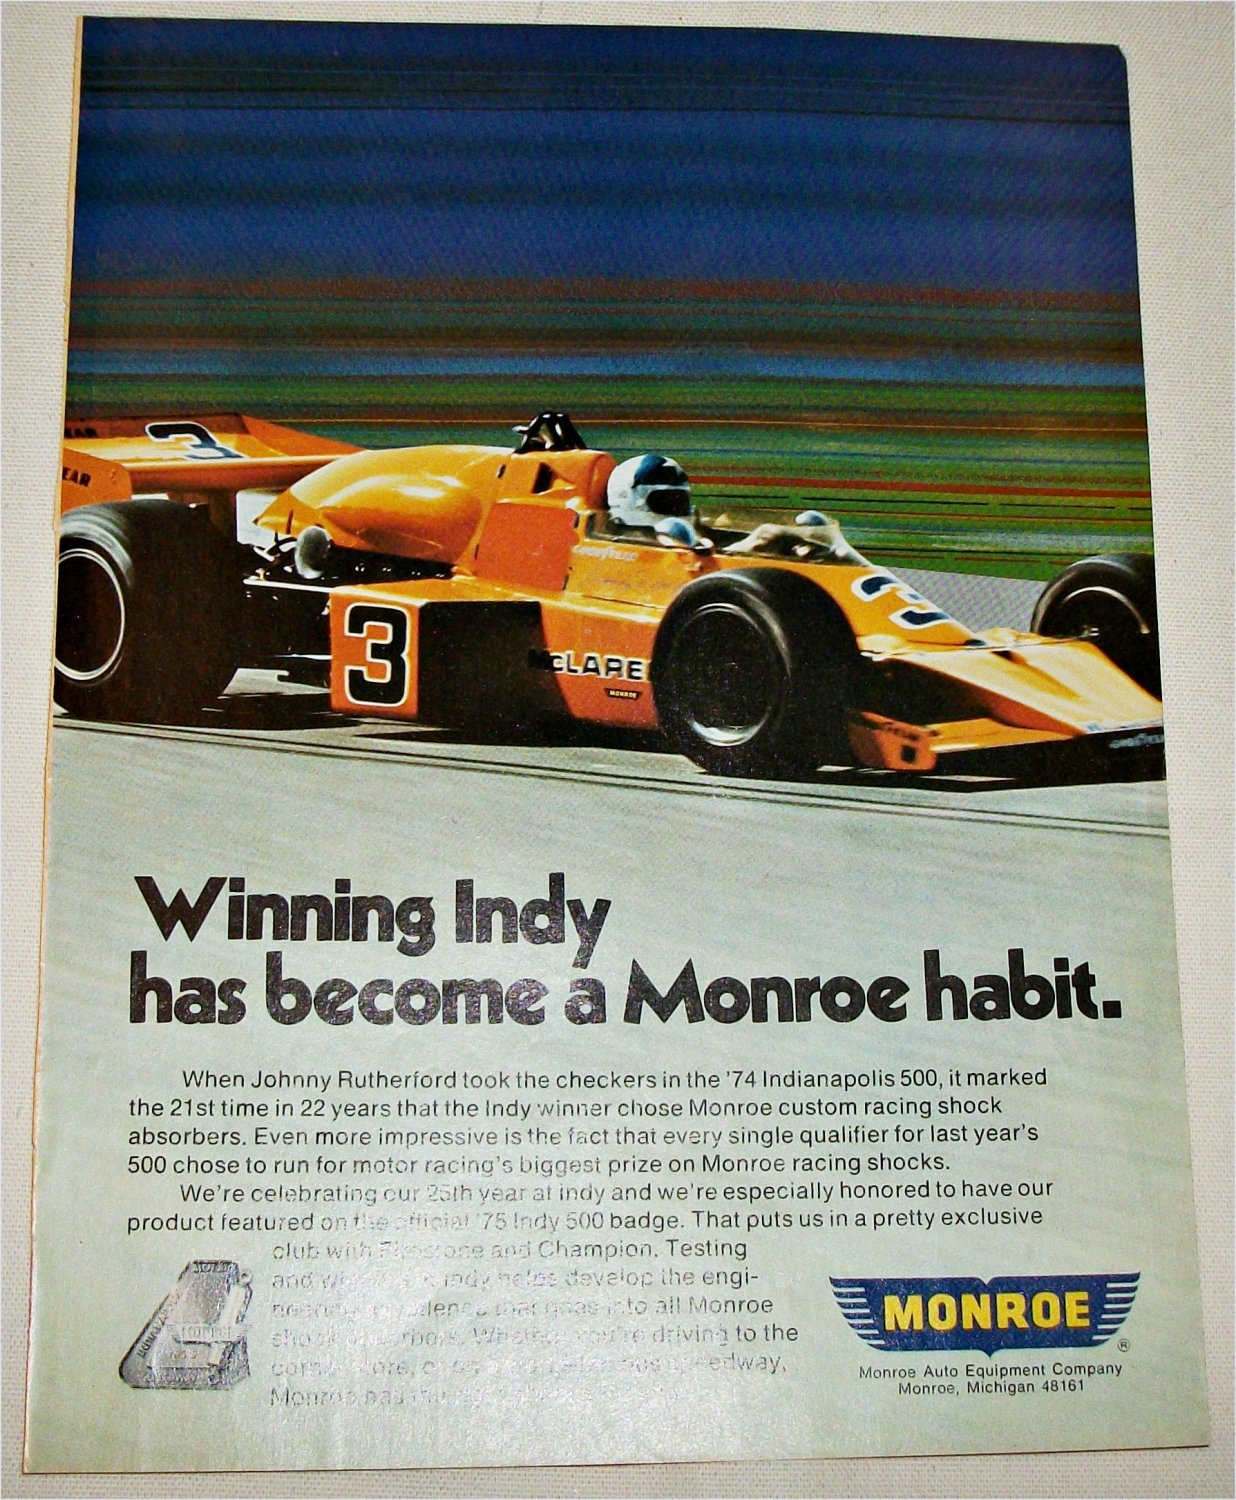 1975 Monroe Shock Absorbers ad featuring Johnny Rutherford